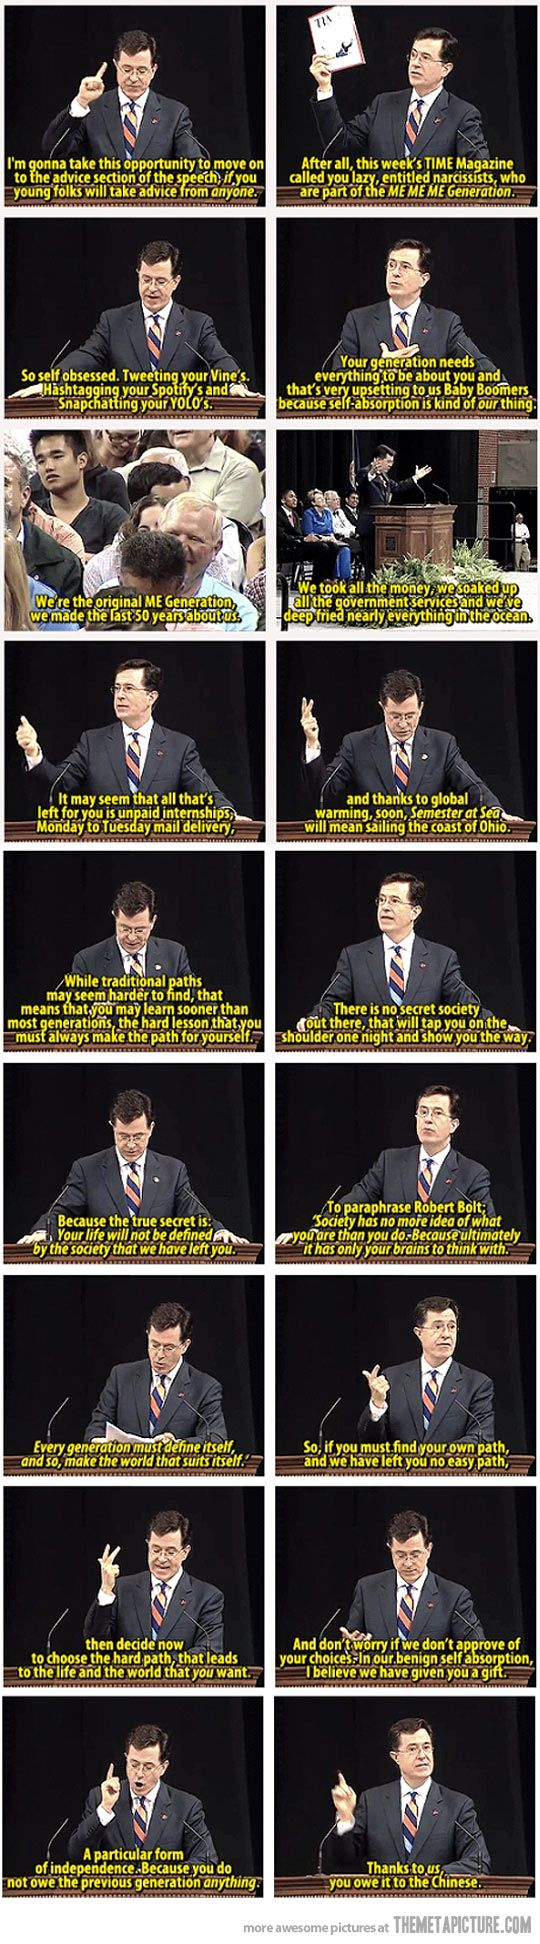 Colbert's speech to UVA class of 2013. Awesome...:)